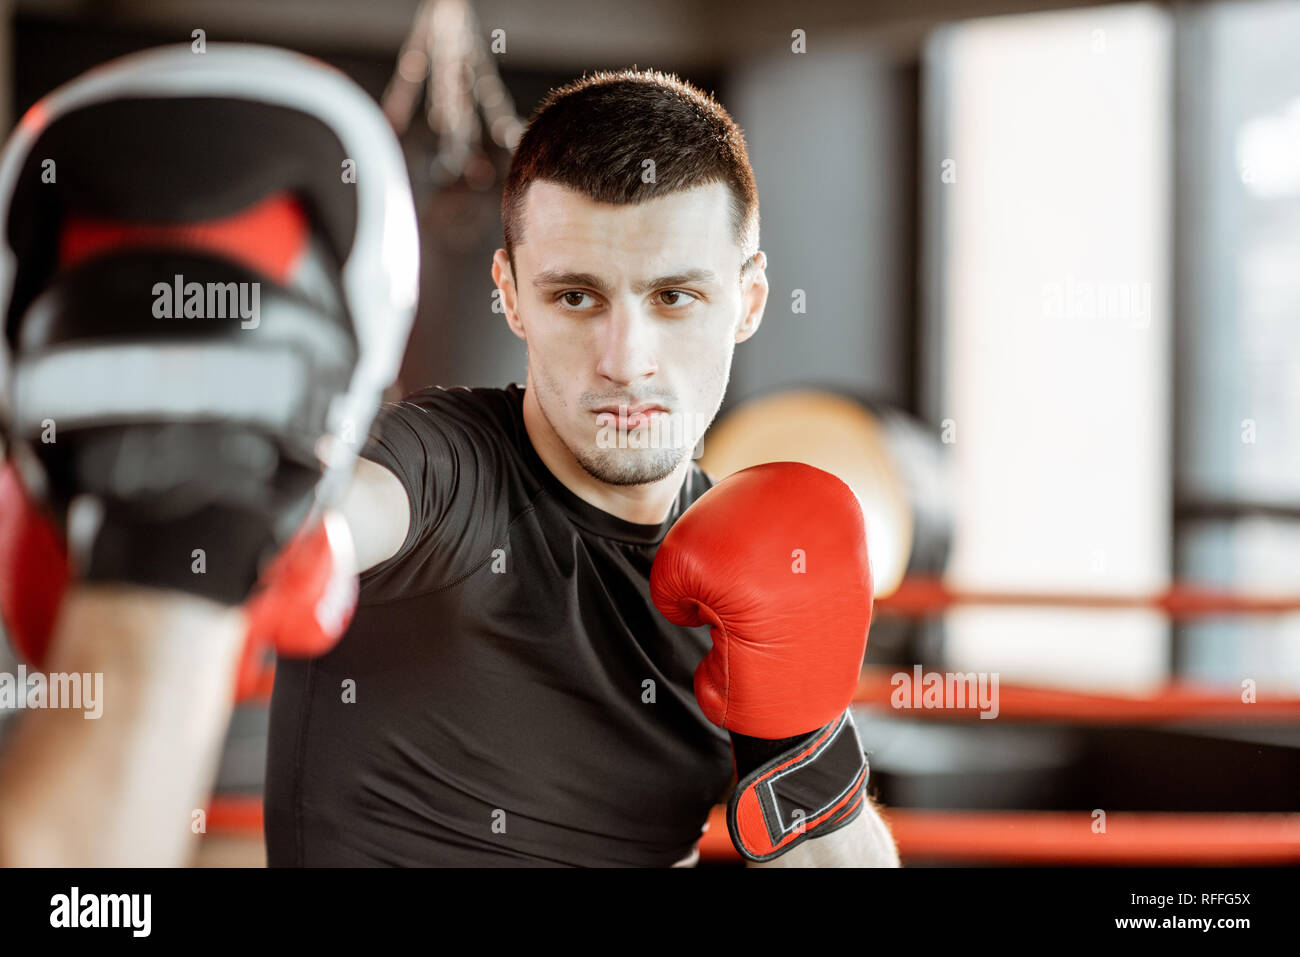 Athletic man fighting during the training with boxing trainer on the boxing ring at the gym - Stock Image